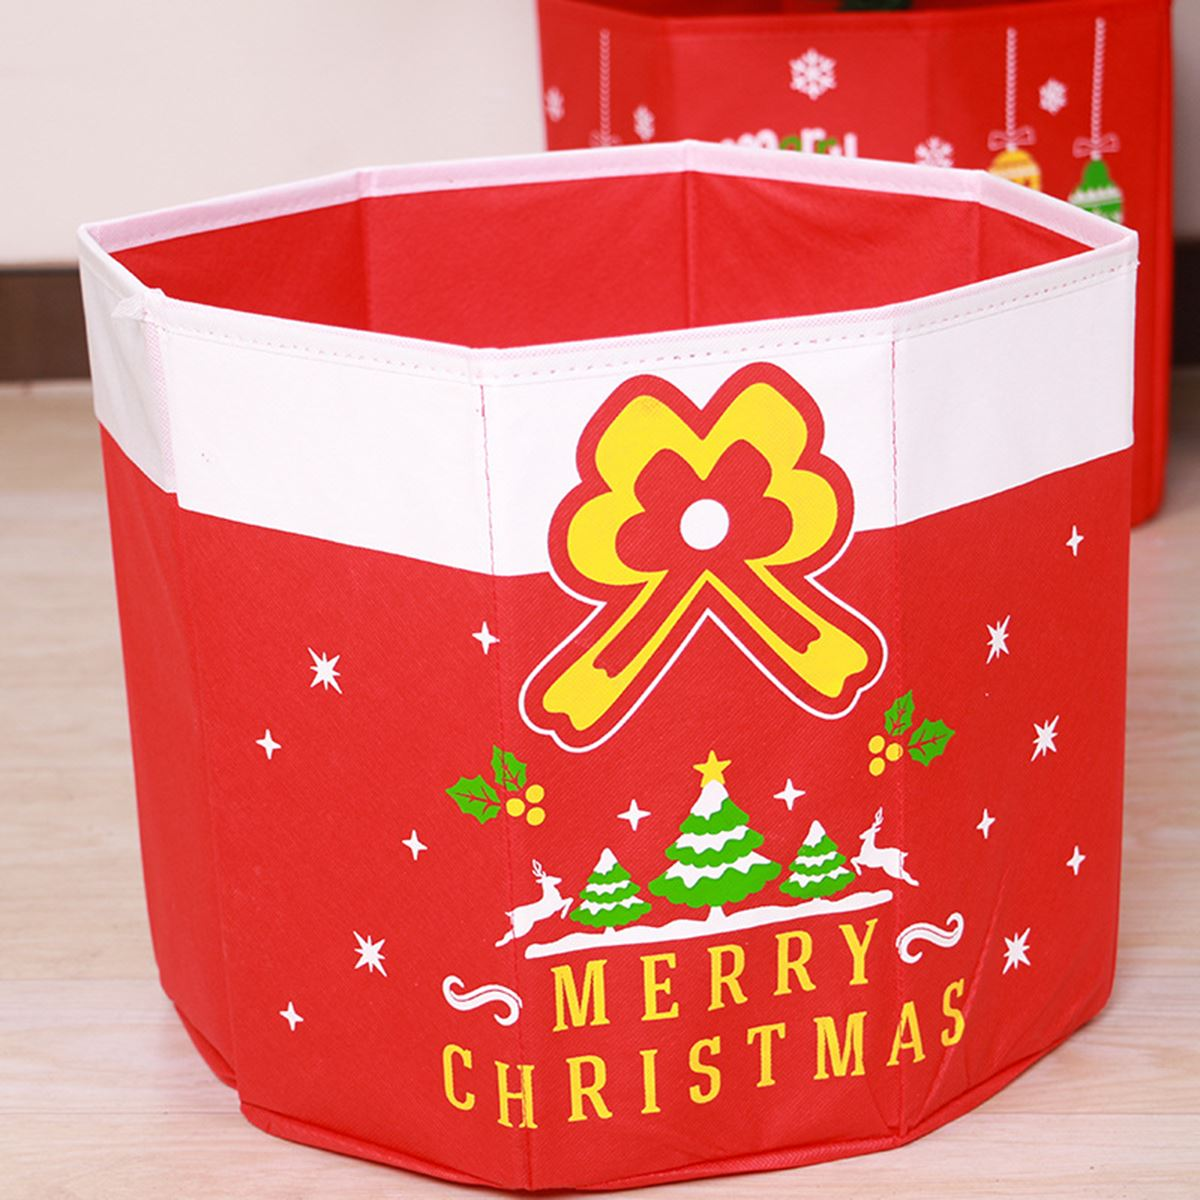 100 Krinner Christmas Tree Stand Home Depot Stand For Real  - Large Christmas Tree Stands For Sale